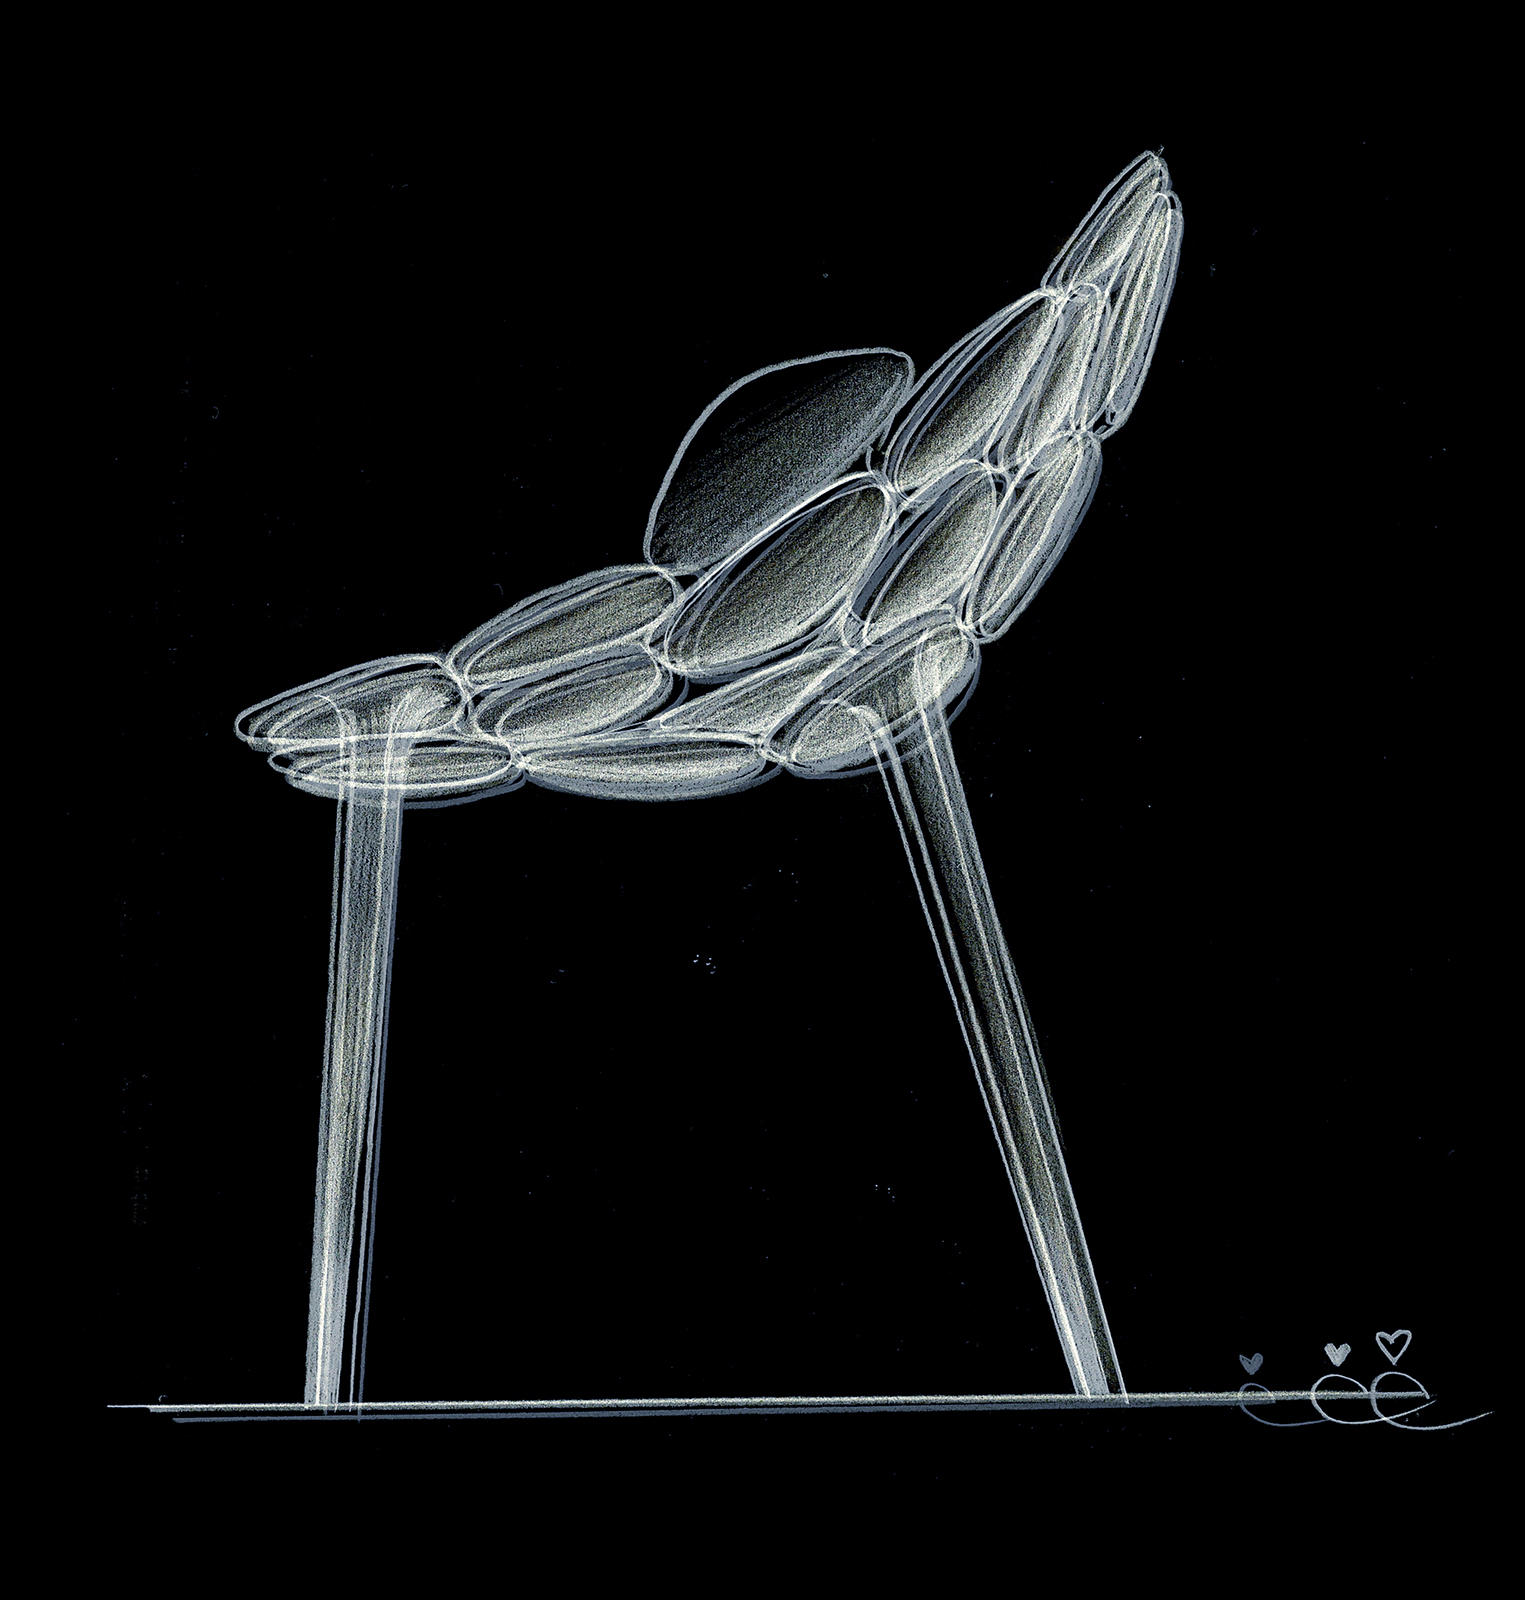 Claud-io chair by eugeni Quitllet with Kartell  sketch 1